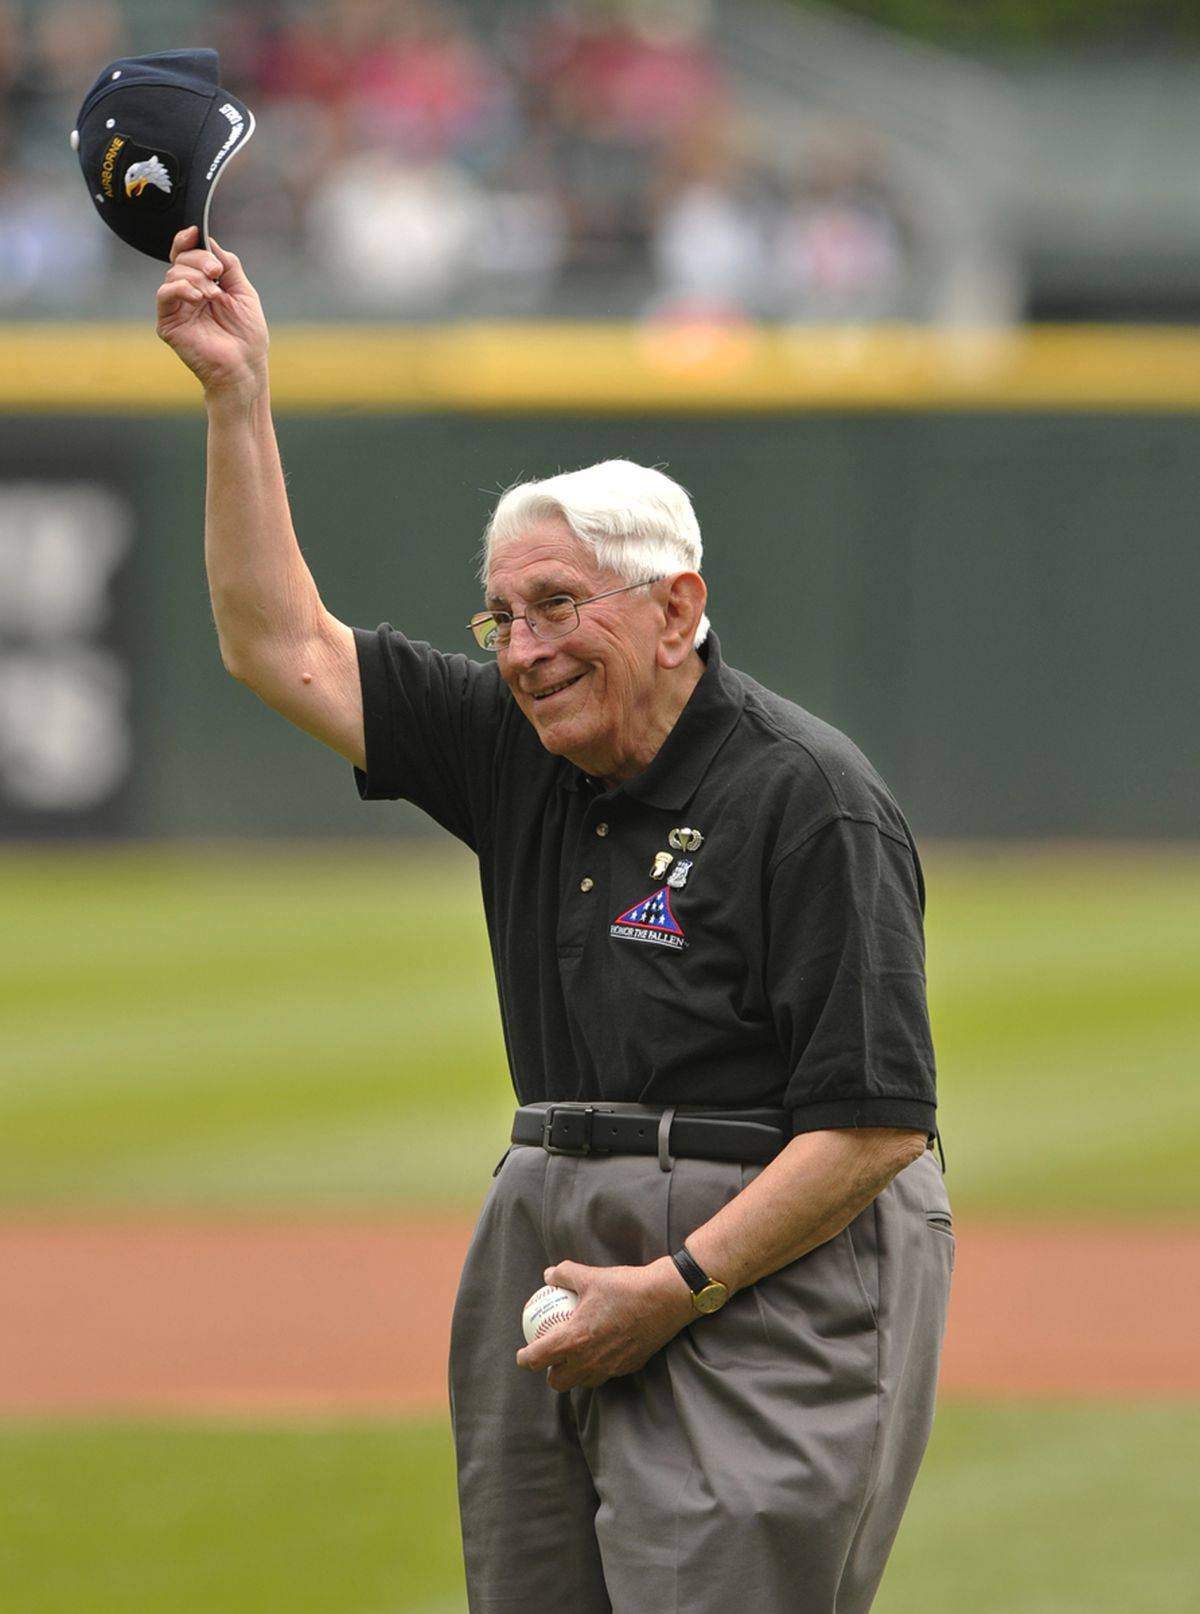 Al Mampre on the field to throw out the ceremonial first pitch before a White Sox game May 26, 2013.